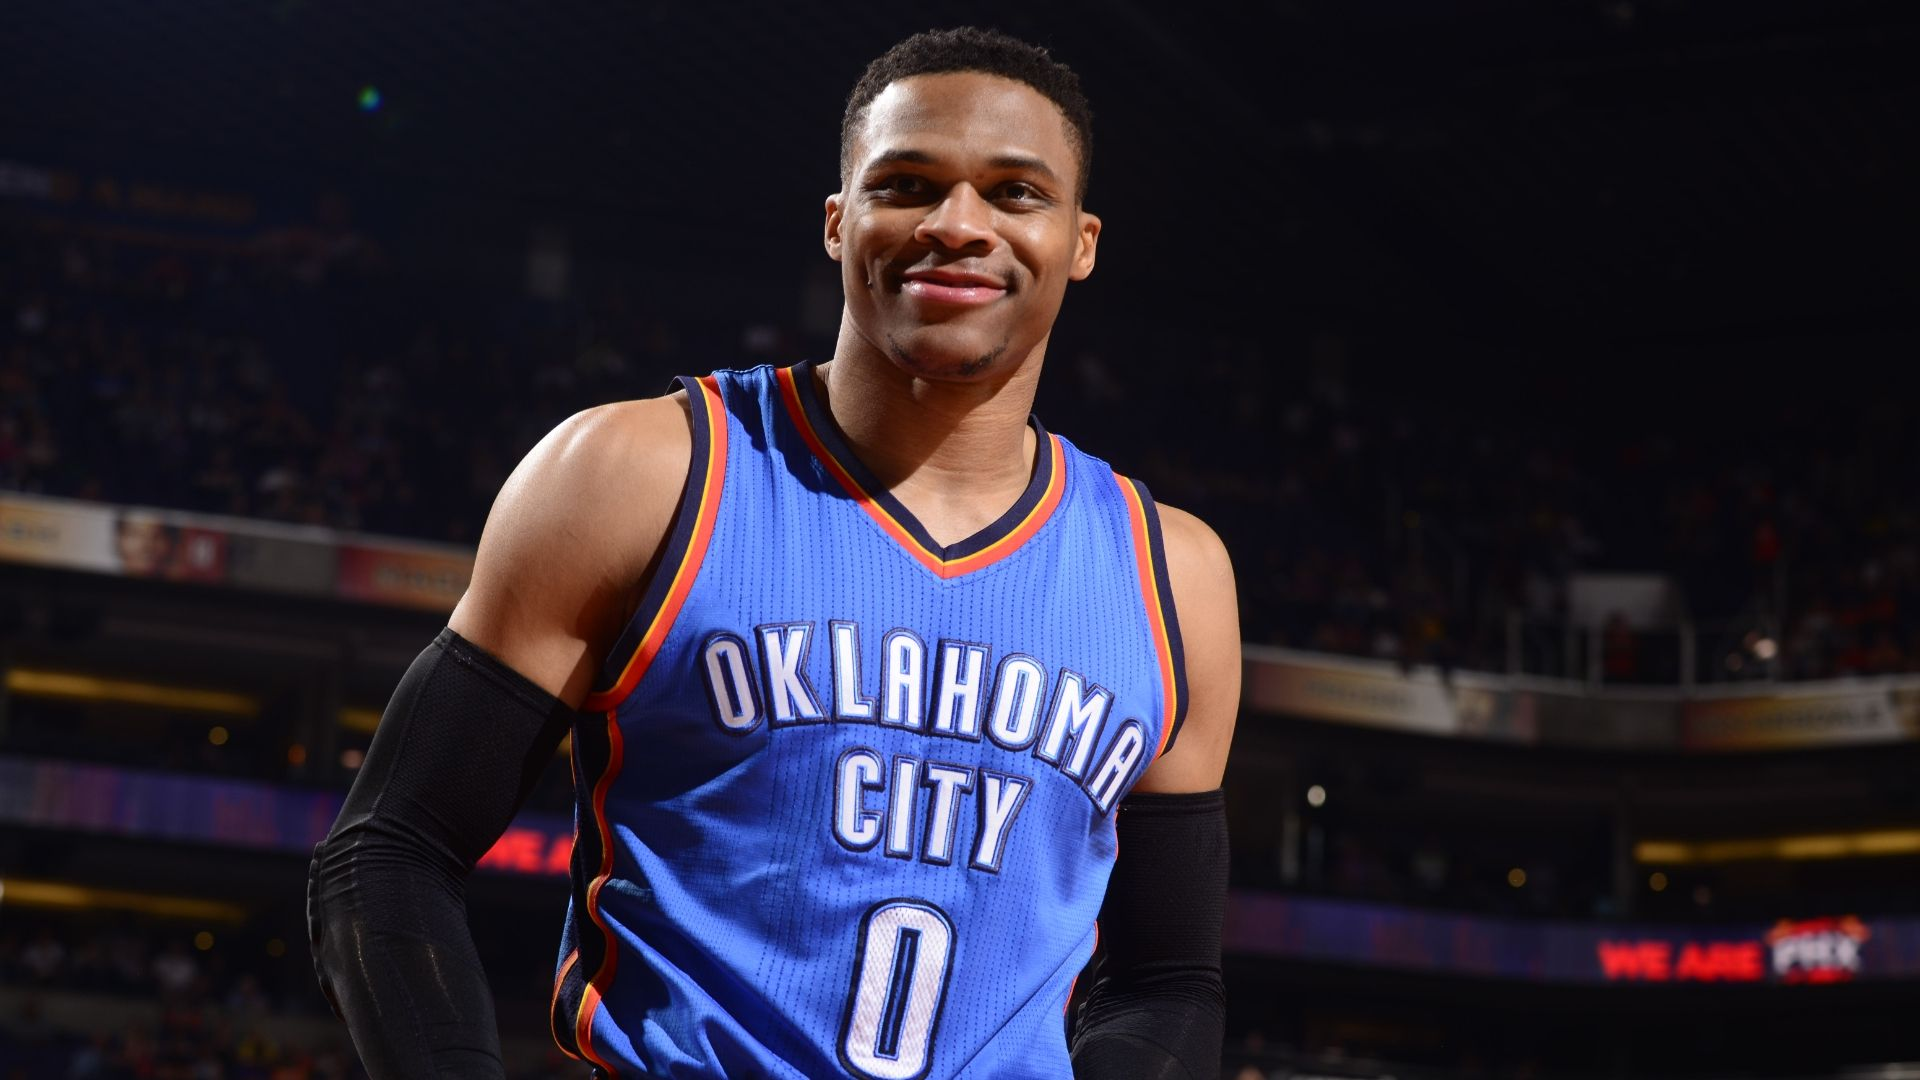 Russell Westbrook's highlight-filled year in three pulse-pounding plays